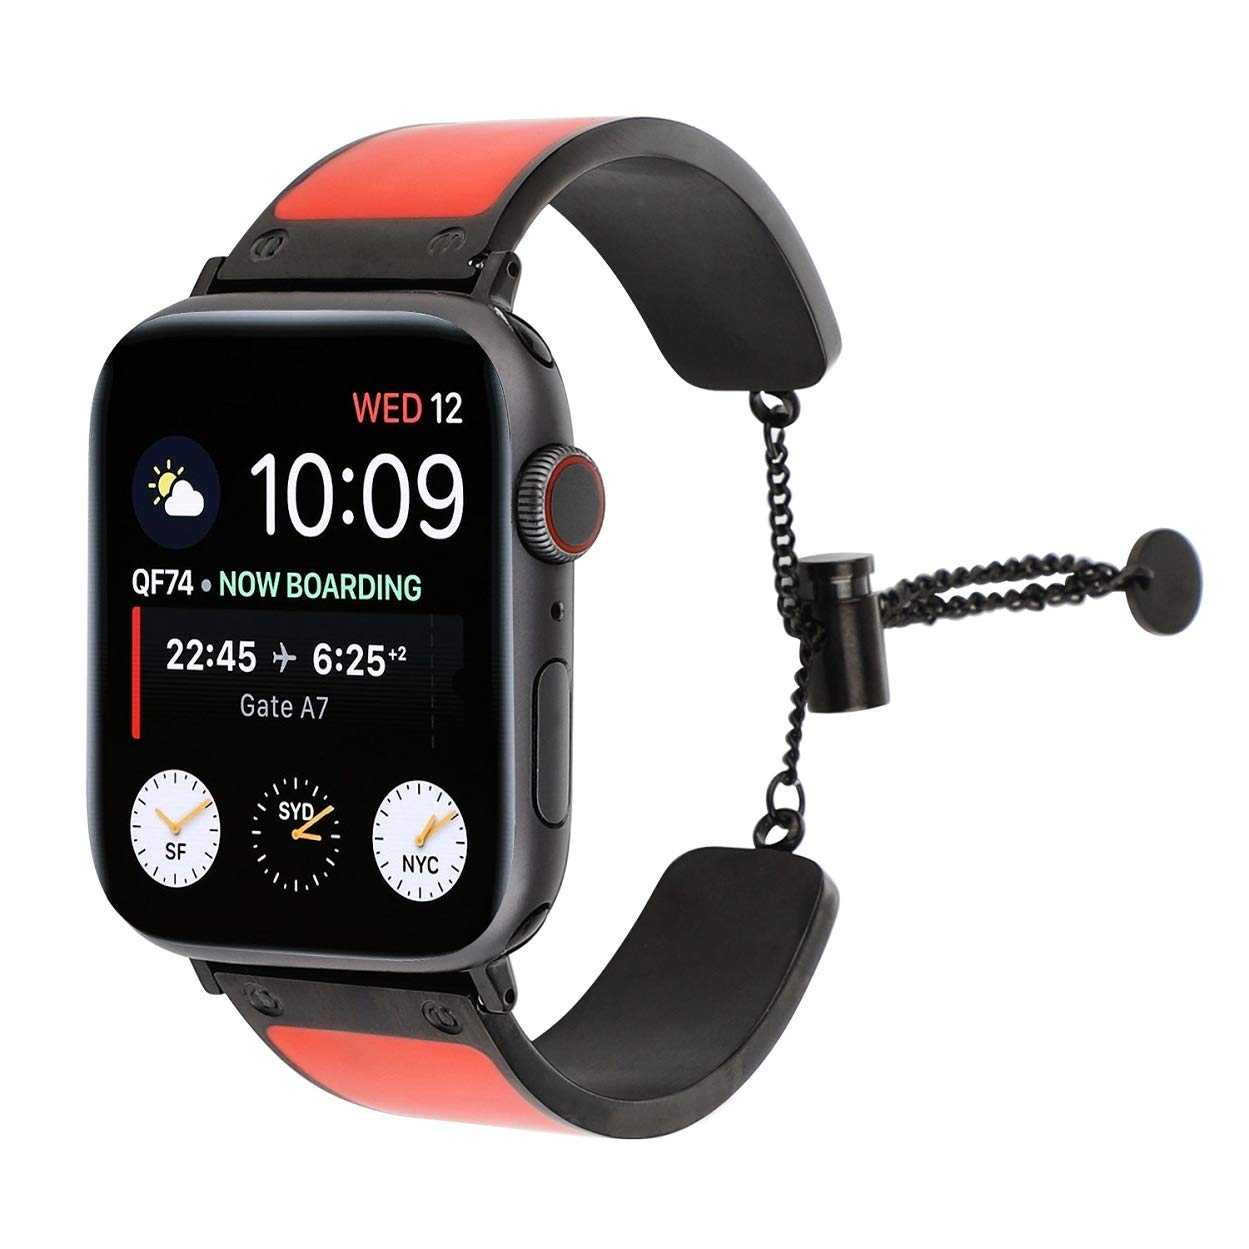 Juzzhou Compatible with Watch Band Apple Watch iWatch Series 1 2 3 4 Wriststrap Wristband Bracelet Wrist Strap Guard Replacement with Metal Adapter Buckle for Woman Girls Lady Boy Red 38mm 40mm by Juzzhou